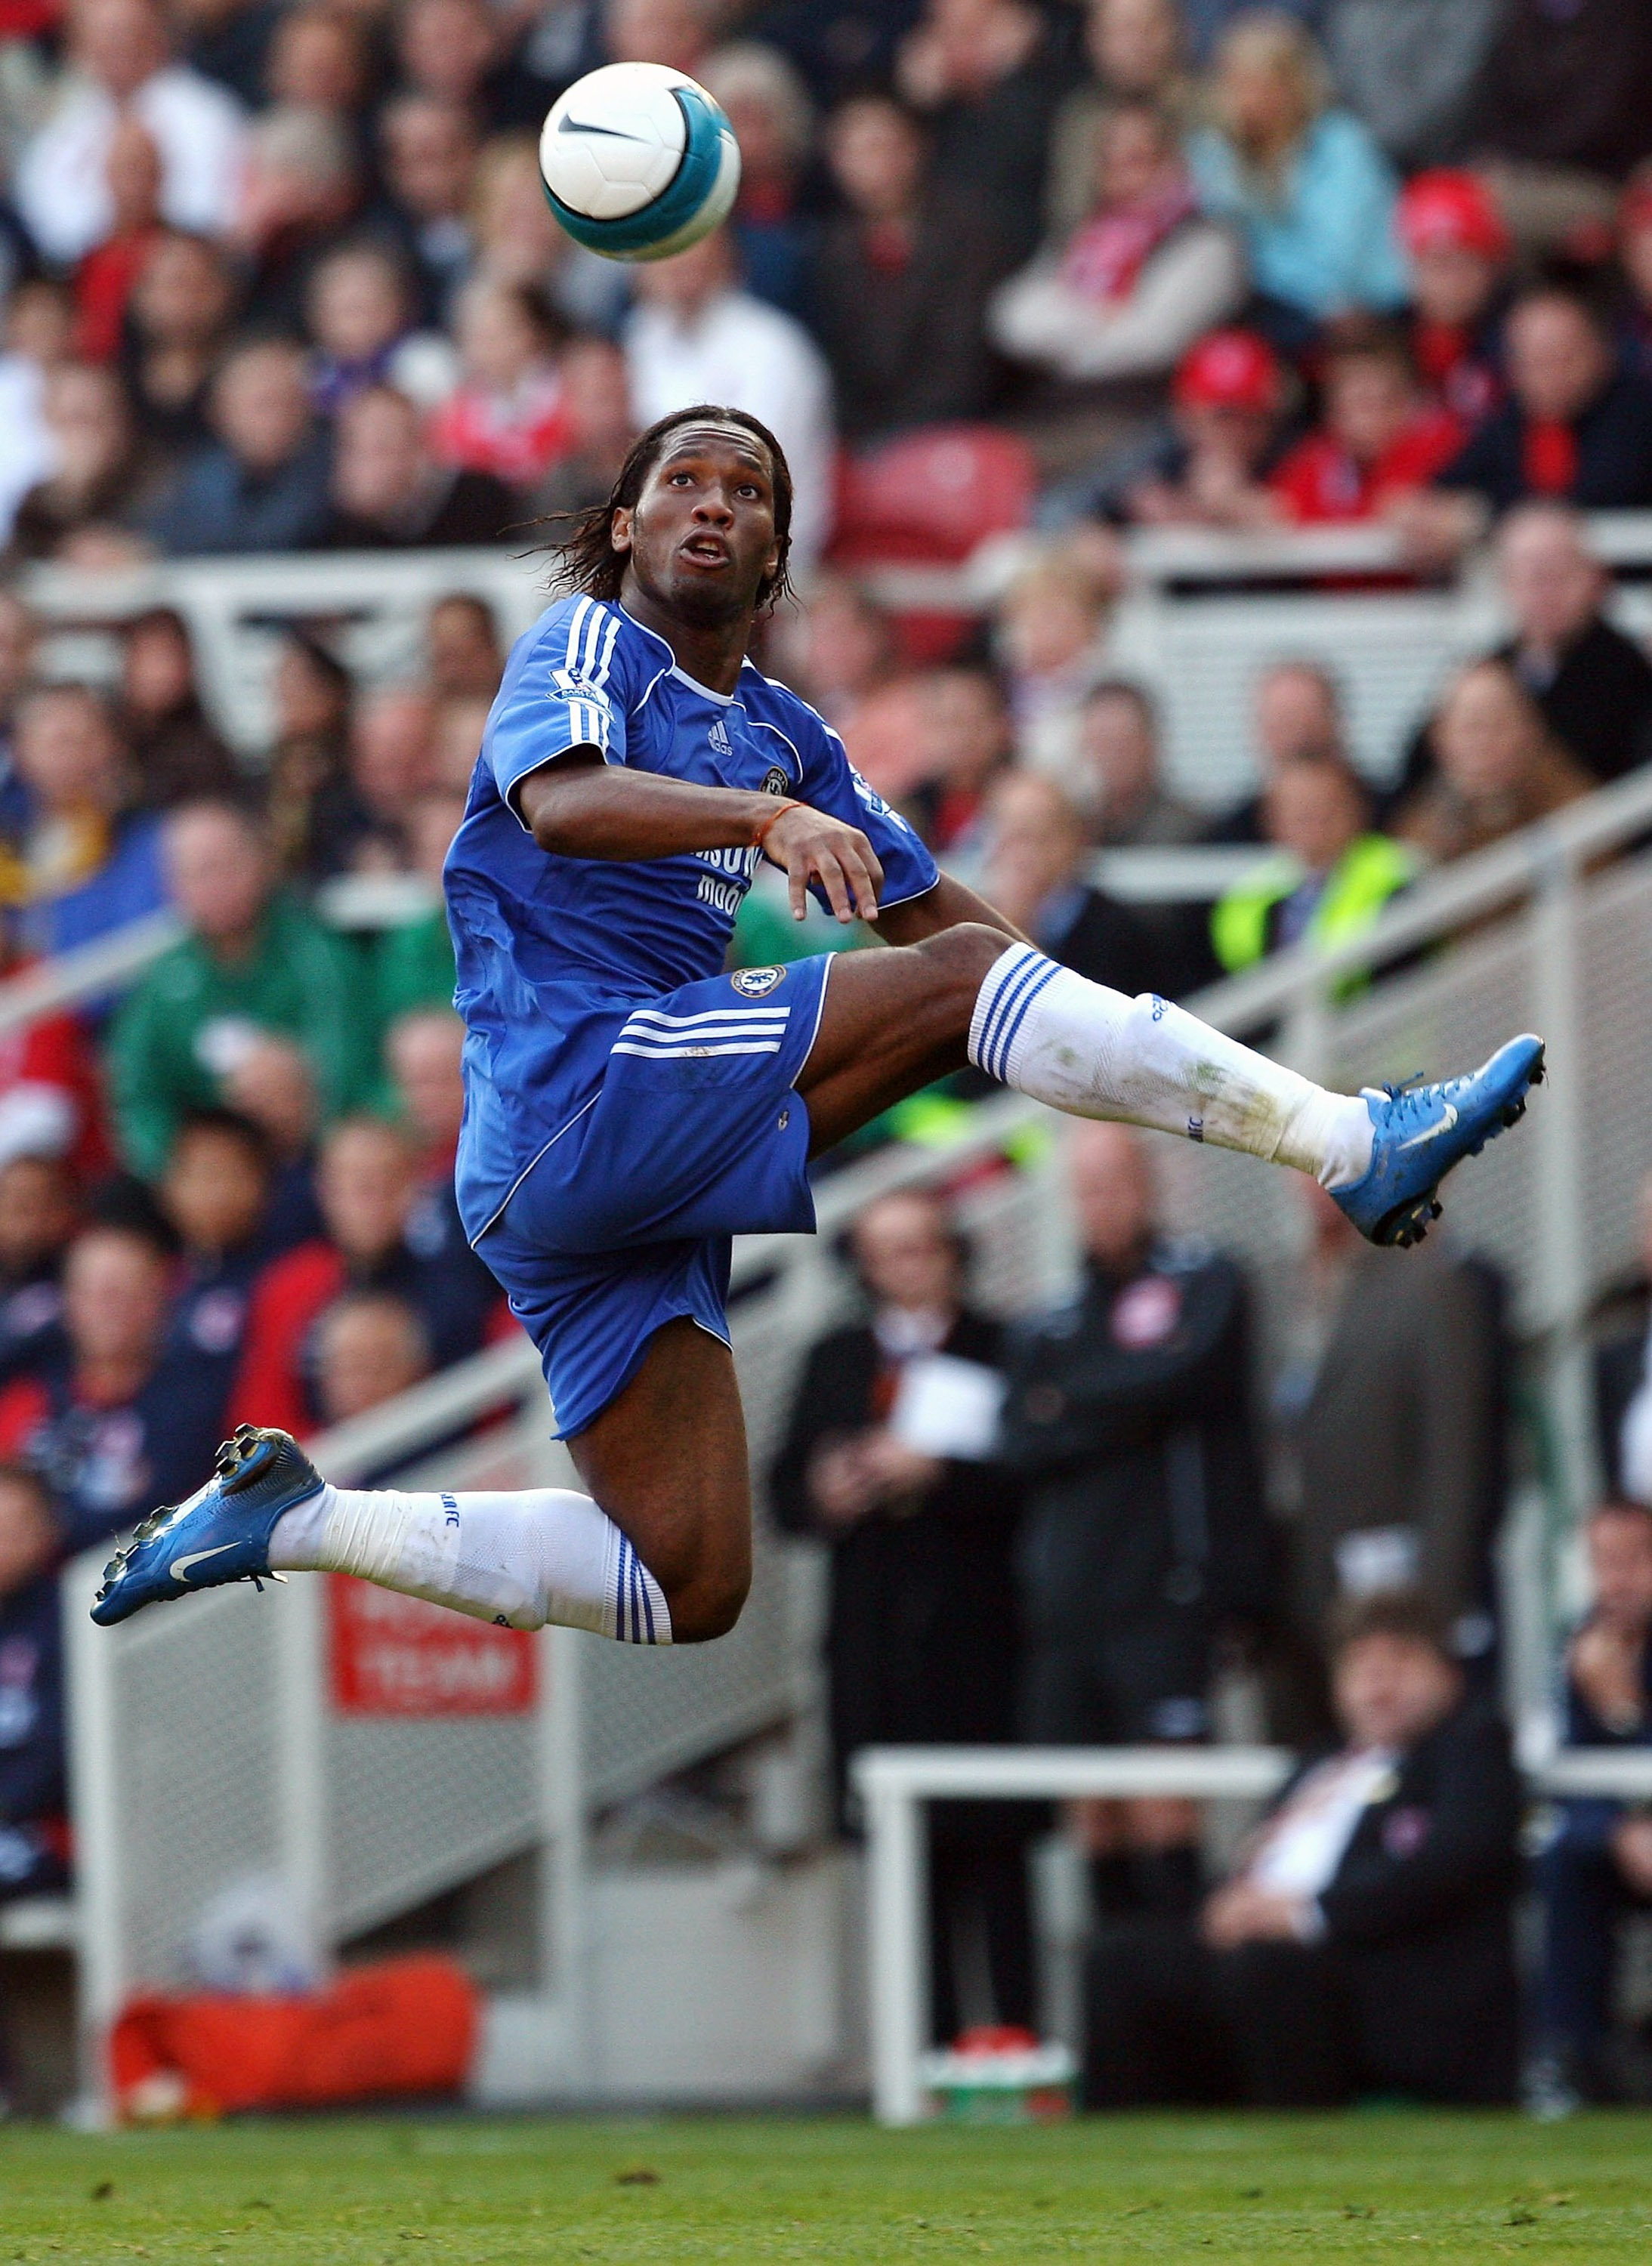 Didier Drogba has been a constant menace up-front for Chelsea